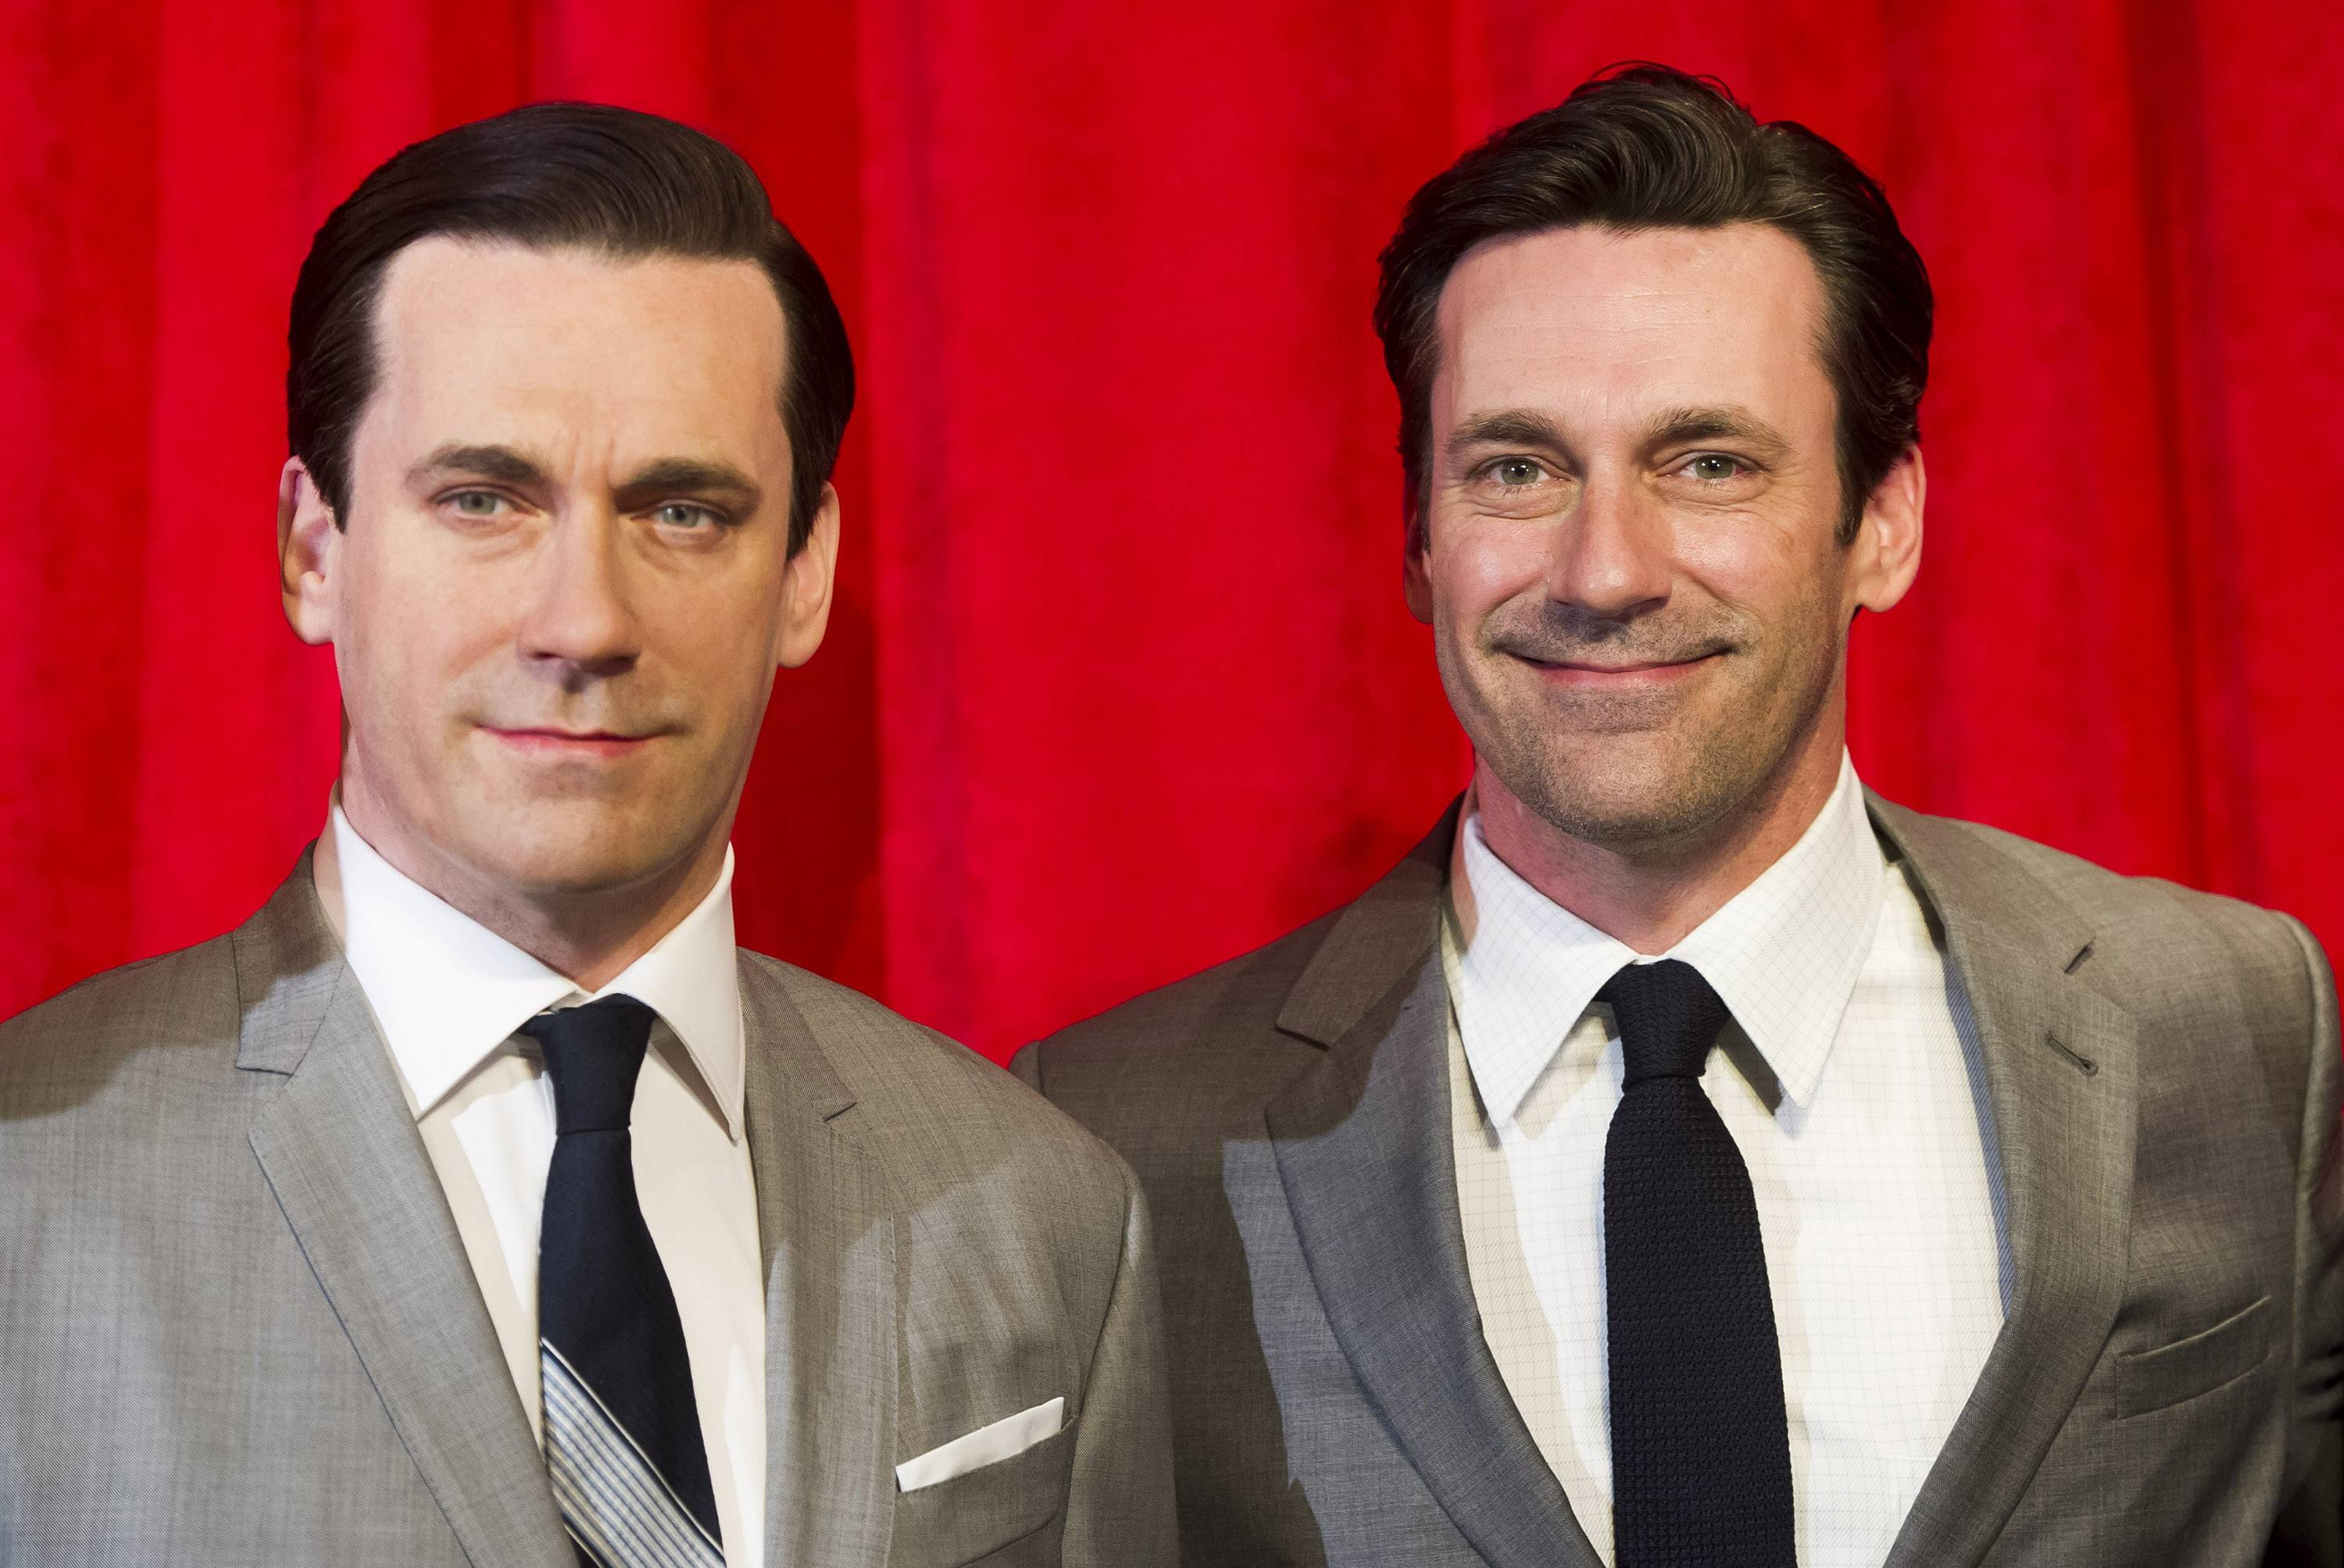 Jon Hamm, right, poses with his wax likeness at an unveiling at Madame Tussauds on Friday, May 9, 2014 in New York.